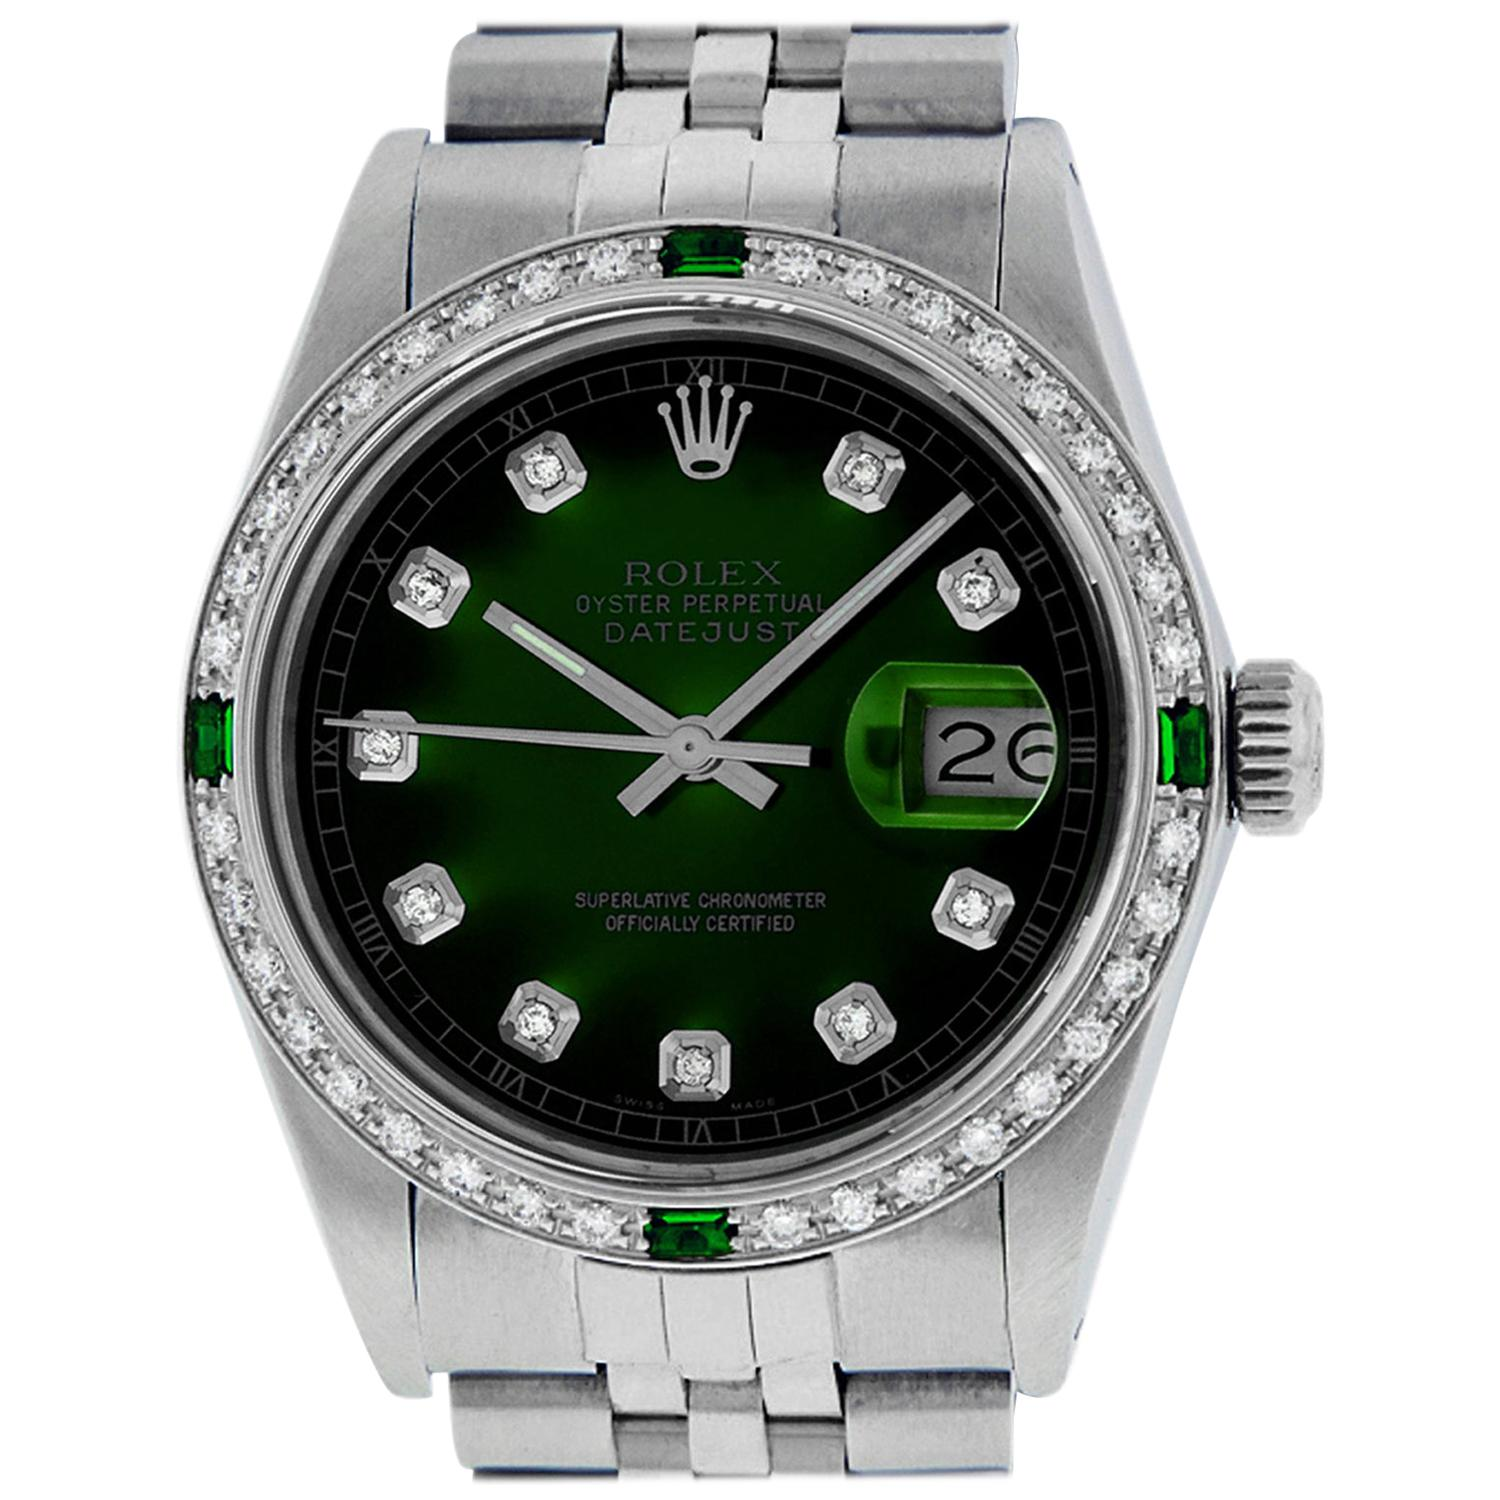 Rolex Men's Datejust SS and 18K White Gold Green Vignette Diamond Watch Emerald